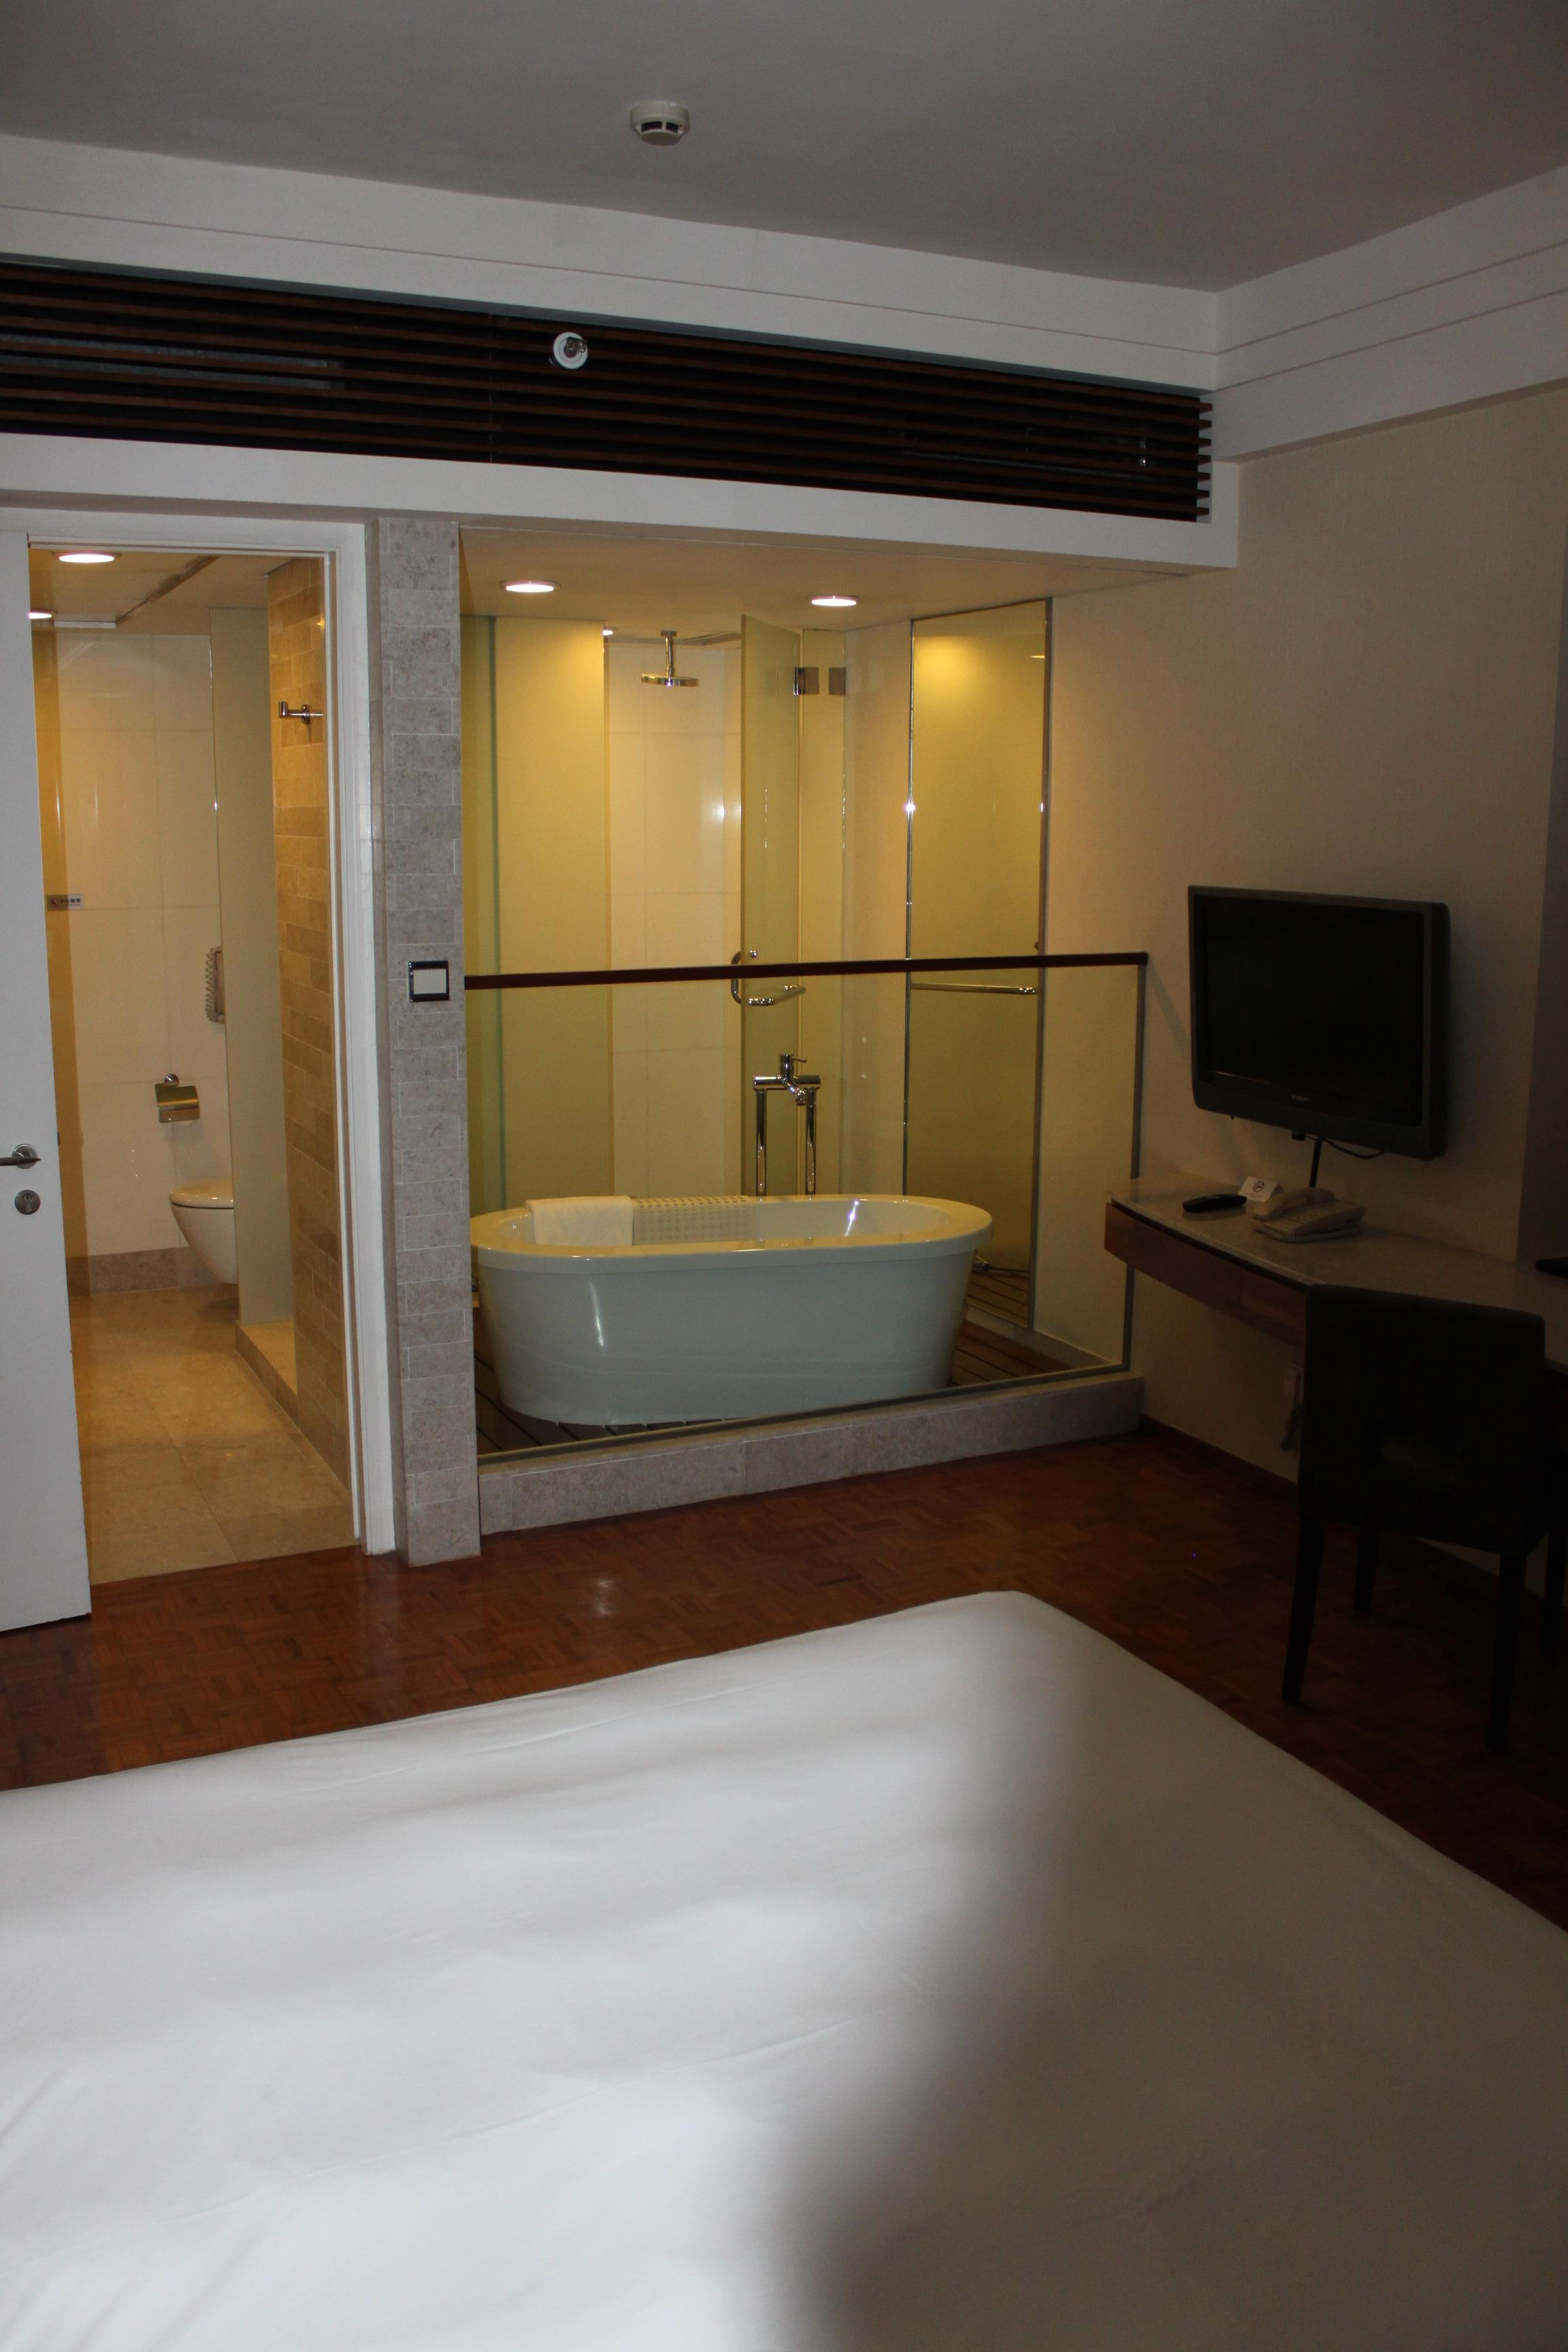 The bedroom and bathroom